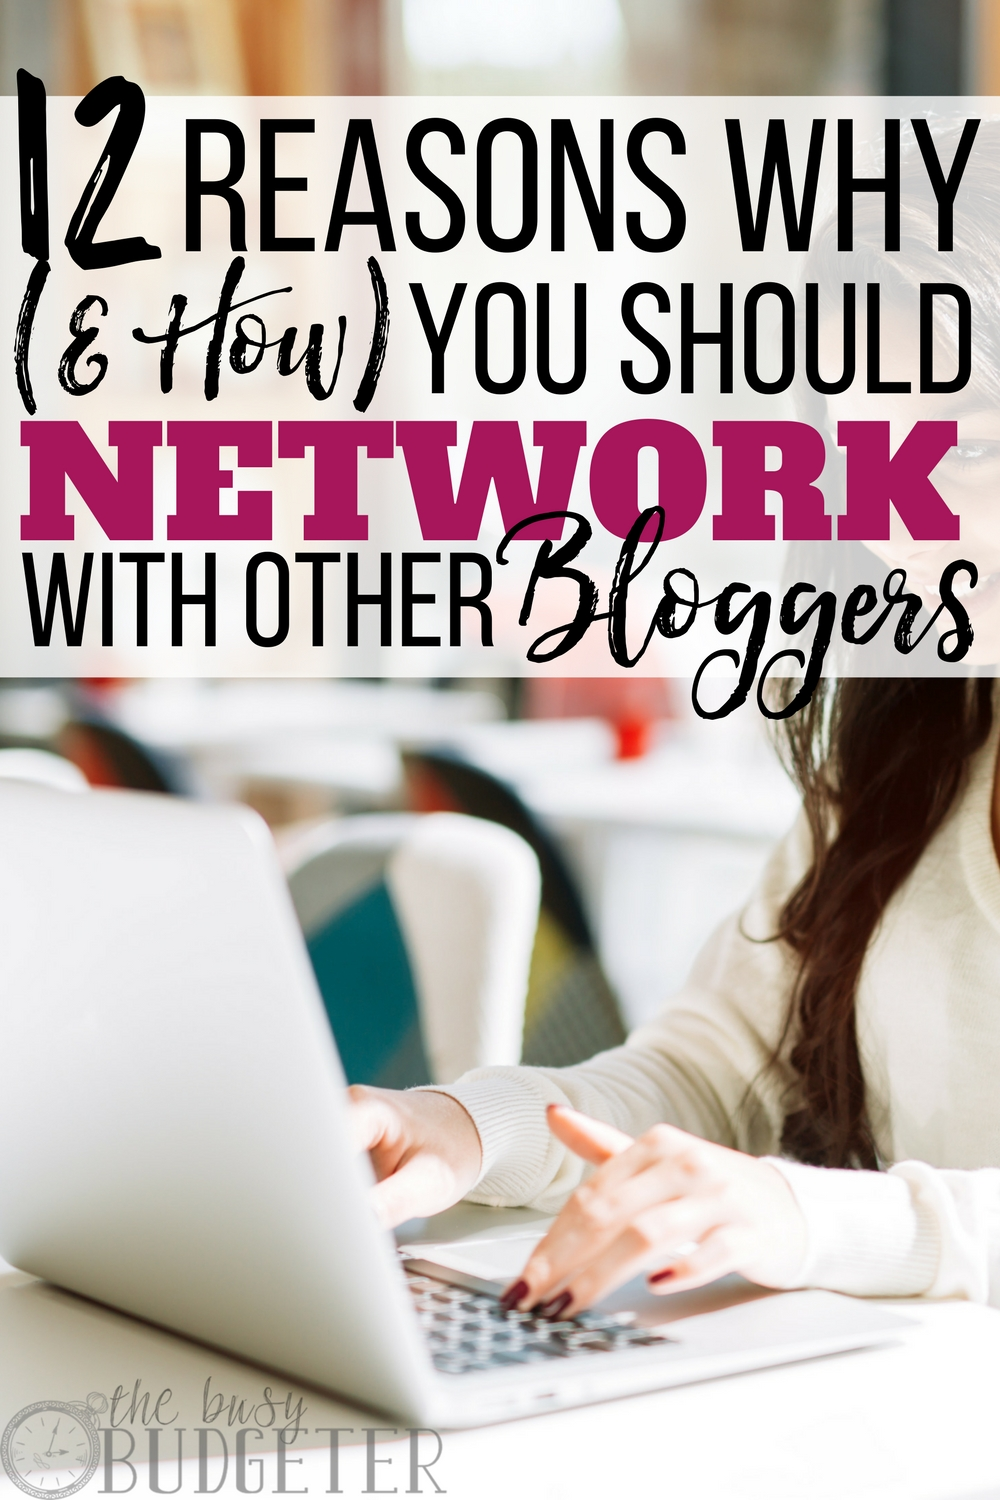 This introvert really struggles with networking so I totally put it off for way longer than I should've! BIG mistake! This article is spot on, it tells you exactly why you need to network with other bloggers to grow your blog and HOW to network even if you struggle!